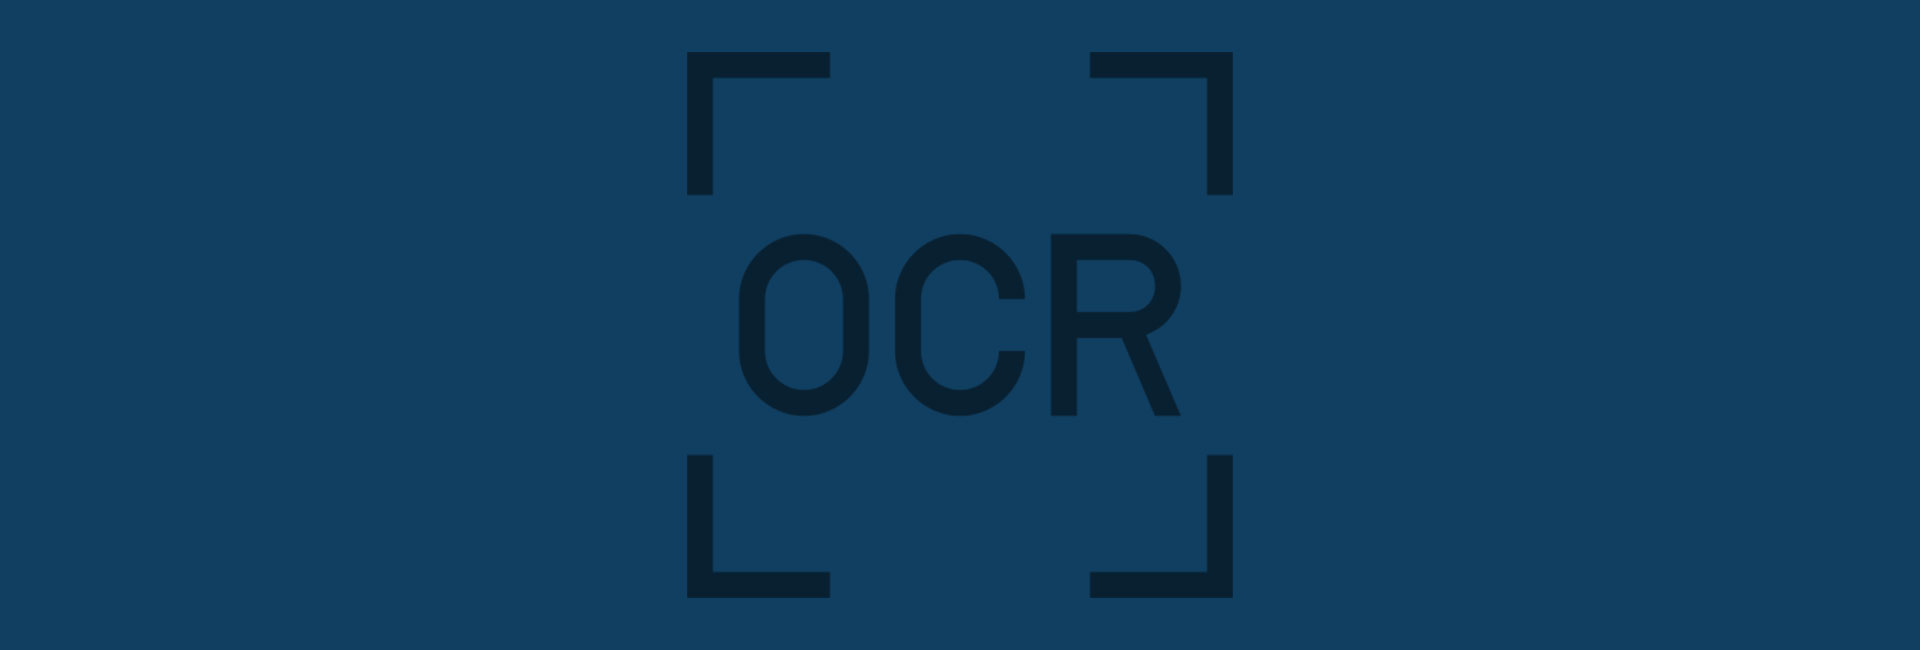 OCR-Processed Documents – PiPRIndex Marker of Public Records Complexity